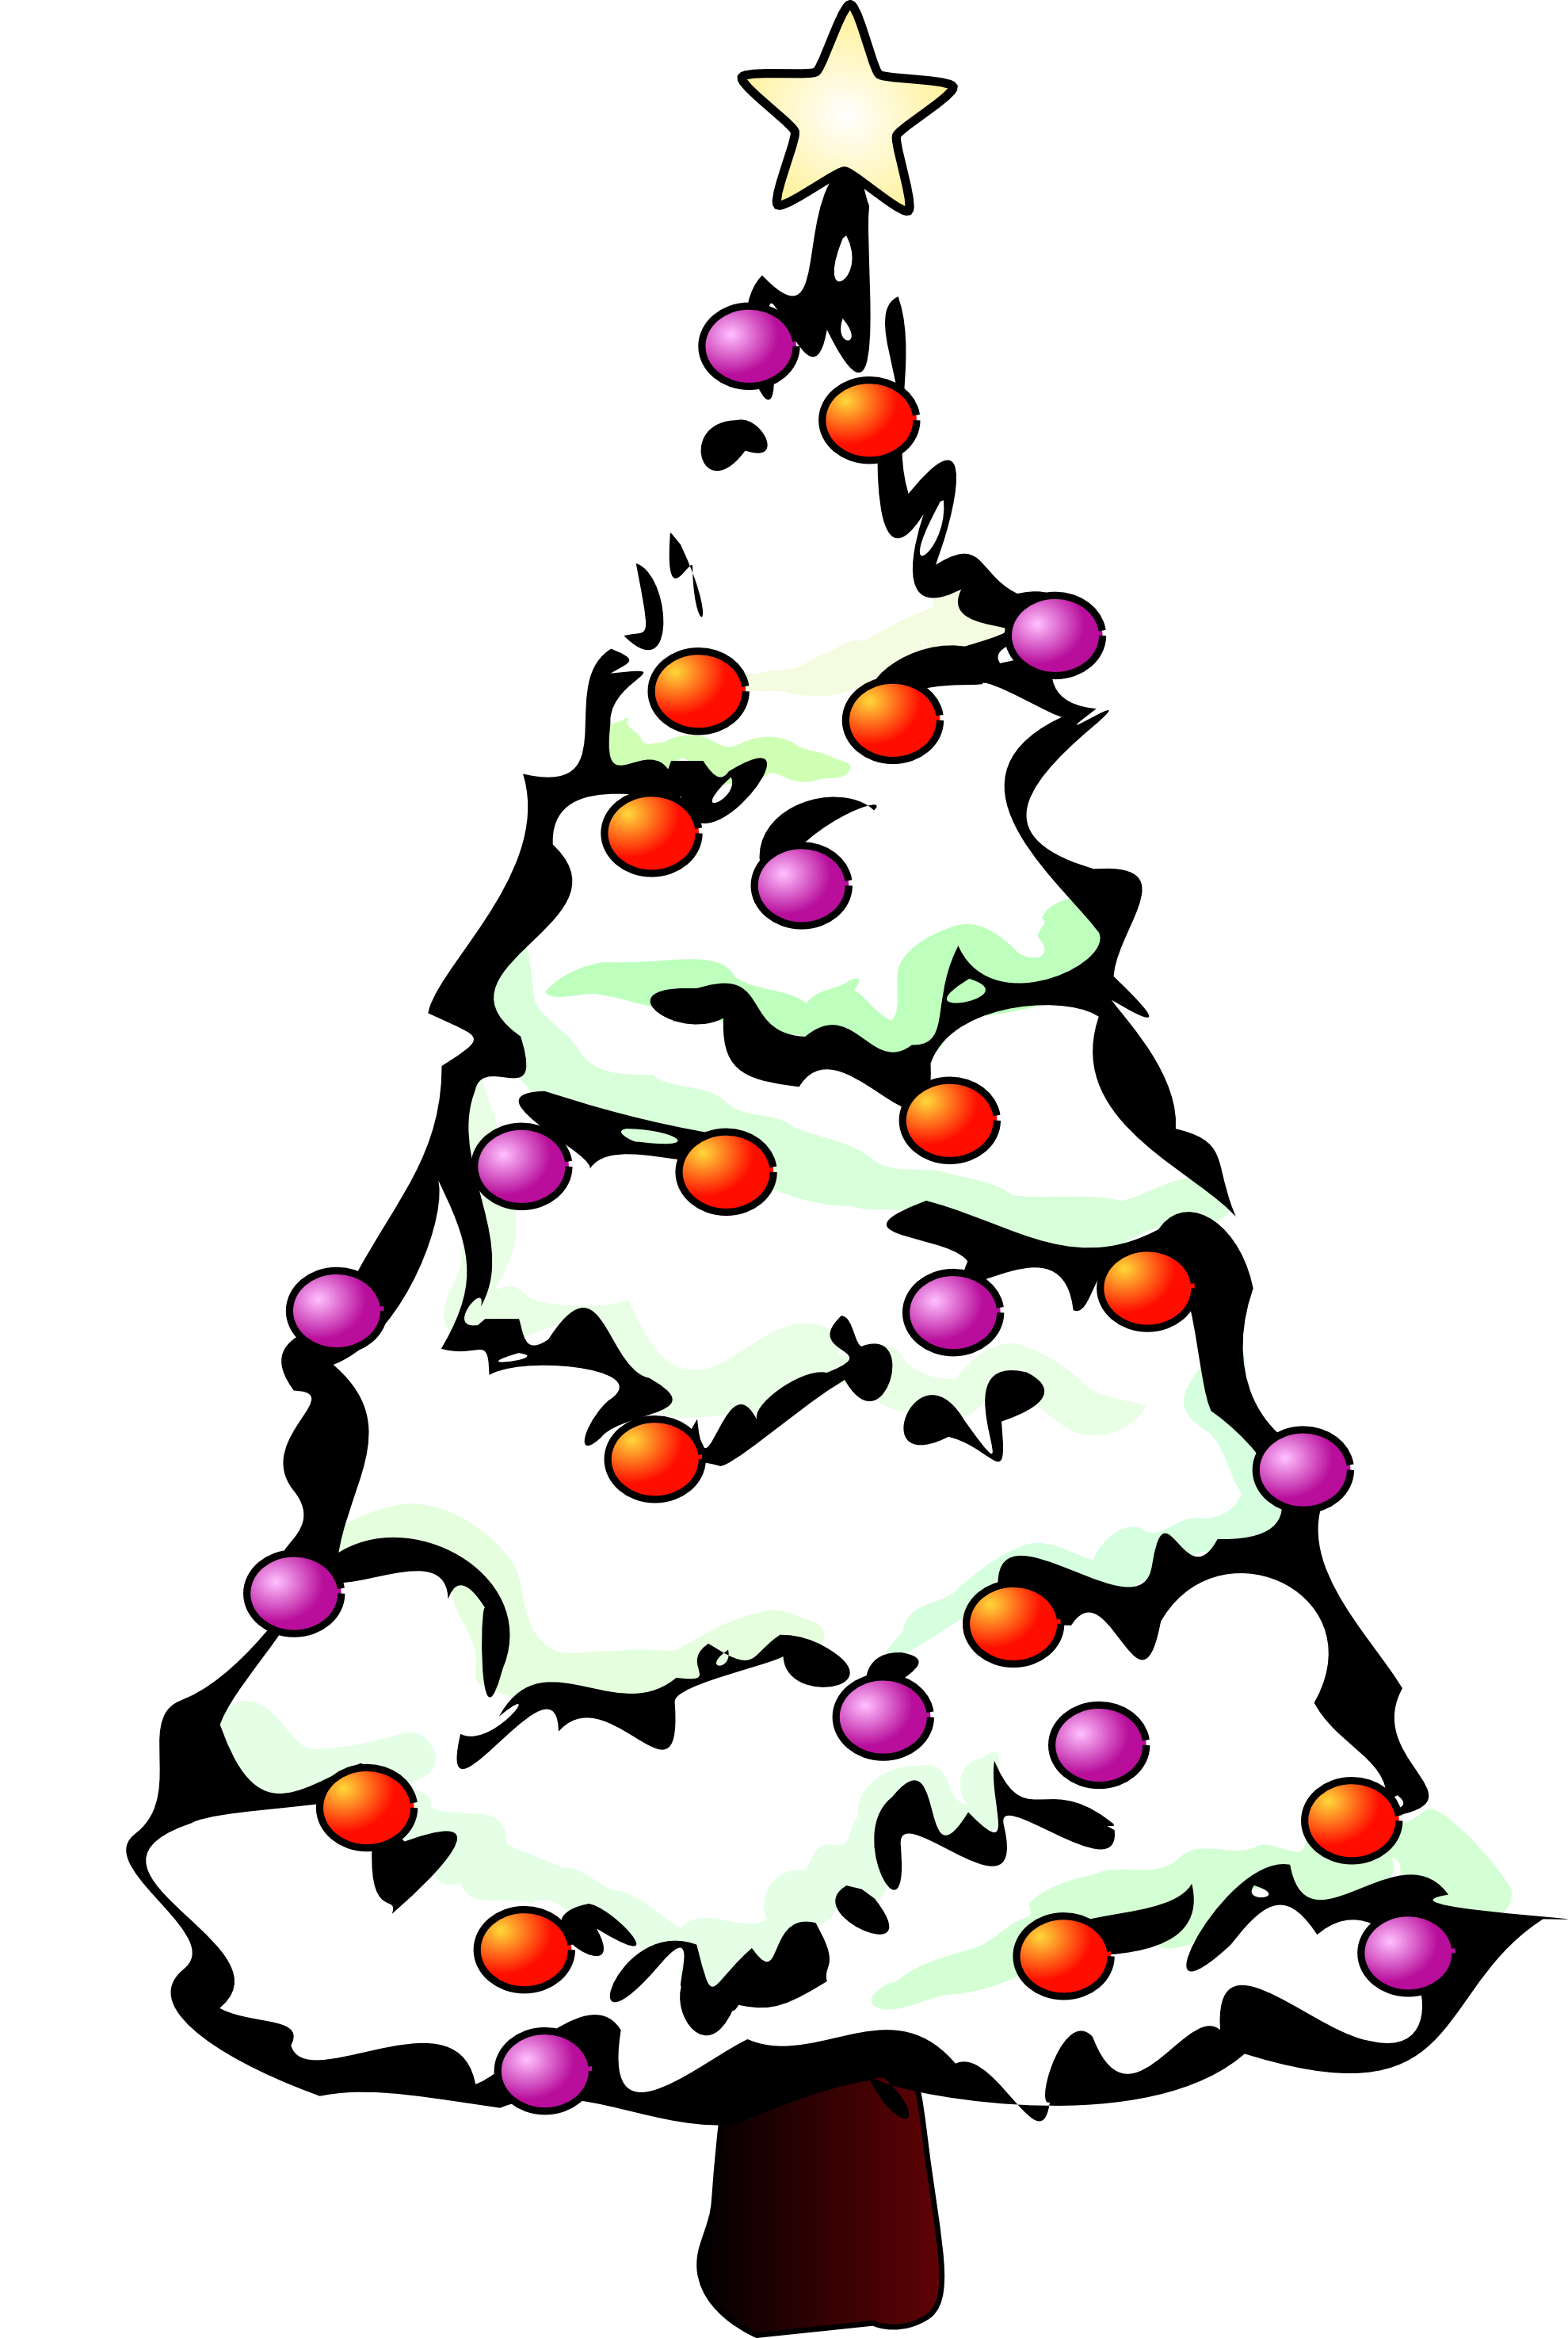 Merry Christmas Clipart Black And White | Clipart Panda - Free Clipart Images